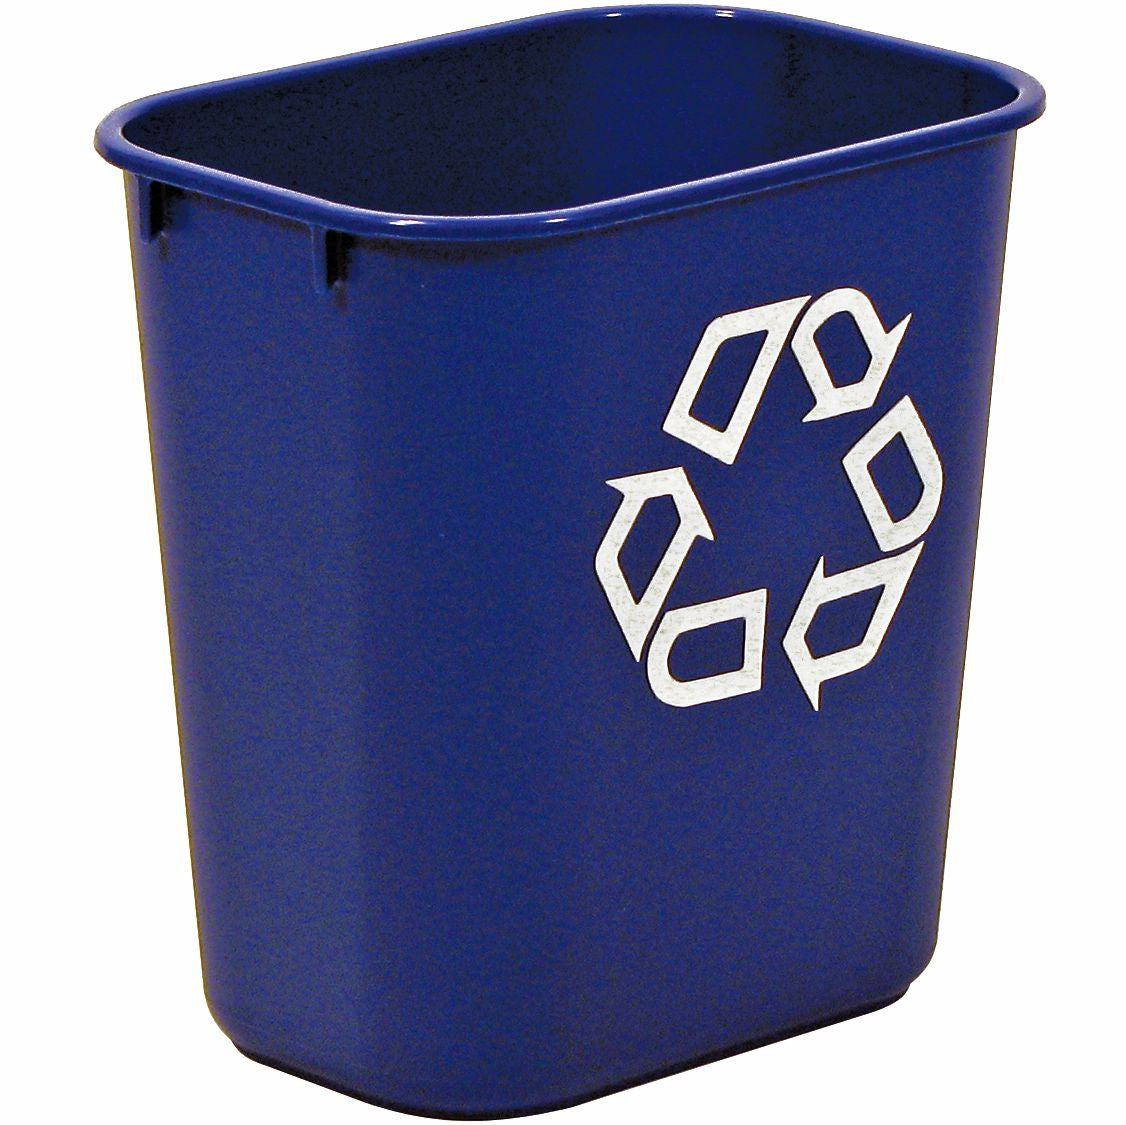 RECYCLING CONTAINER BLUE